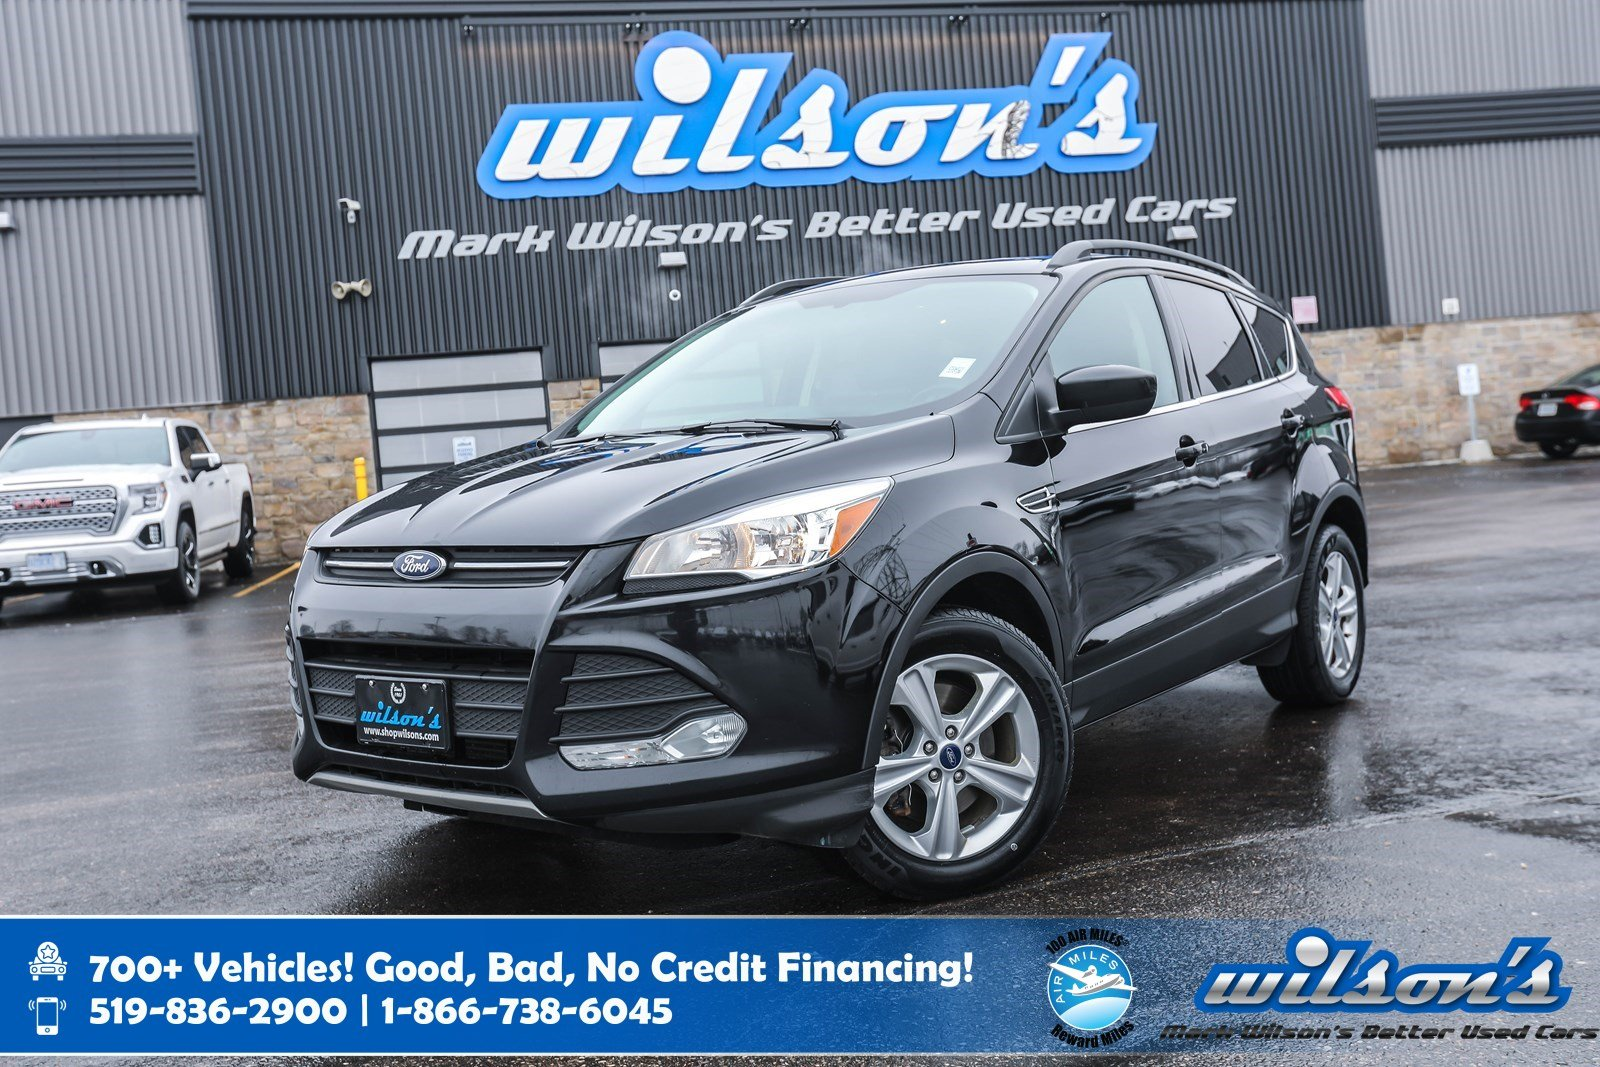 Certified Pre-Owned 2016 Ford Escape SE 4x4, Leather, Navigation, Sunroof, Power Liftgate, New Tires, Power Seat and more!